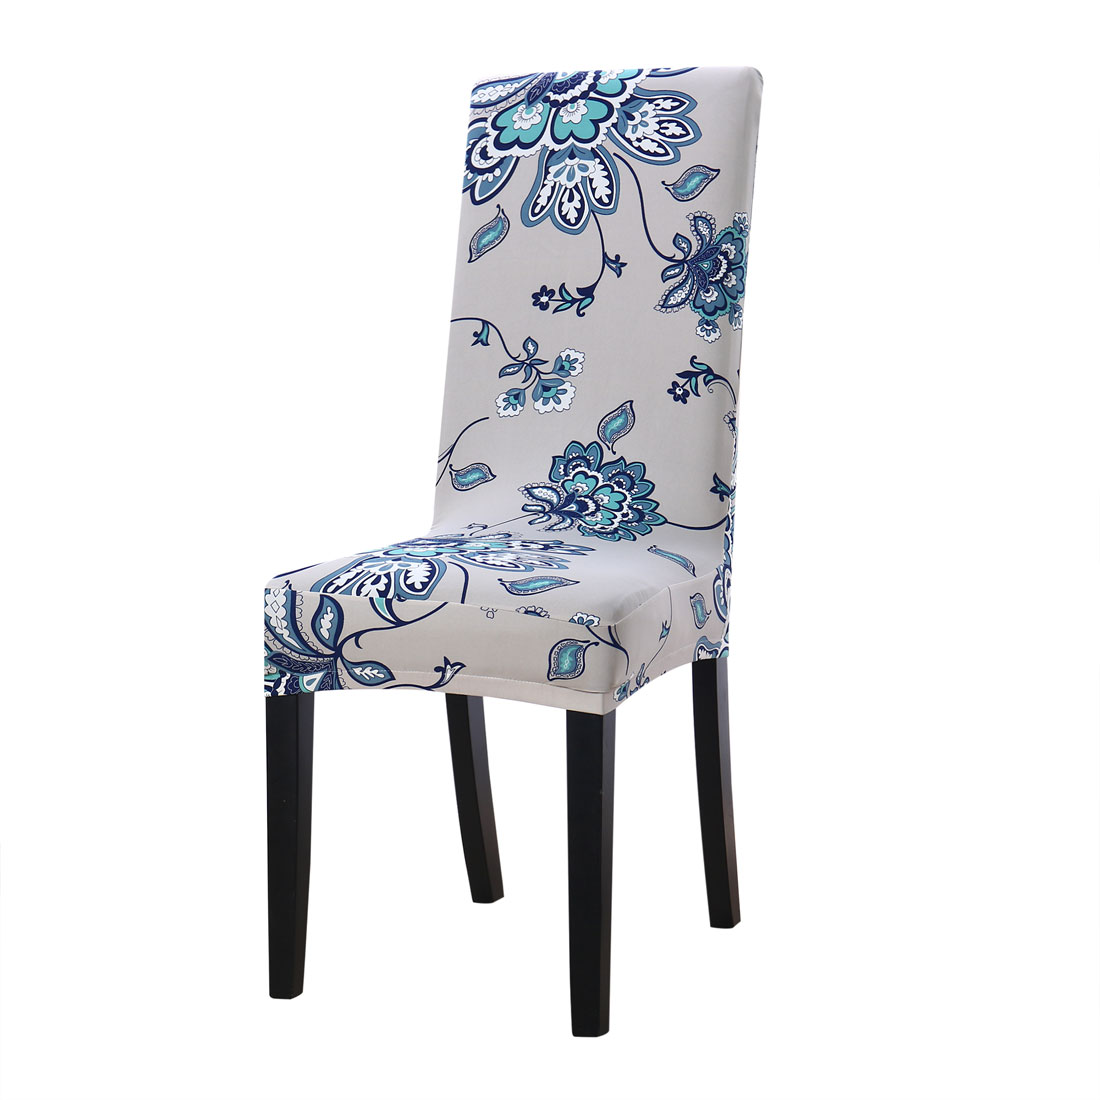 christmas folding chair covers deep tissue massage dining walmart com product image unique bargains home decor washable stretch slipcovers short room stool cover 8